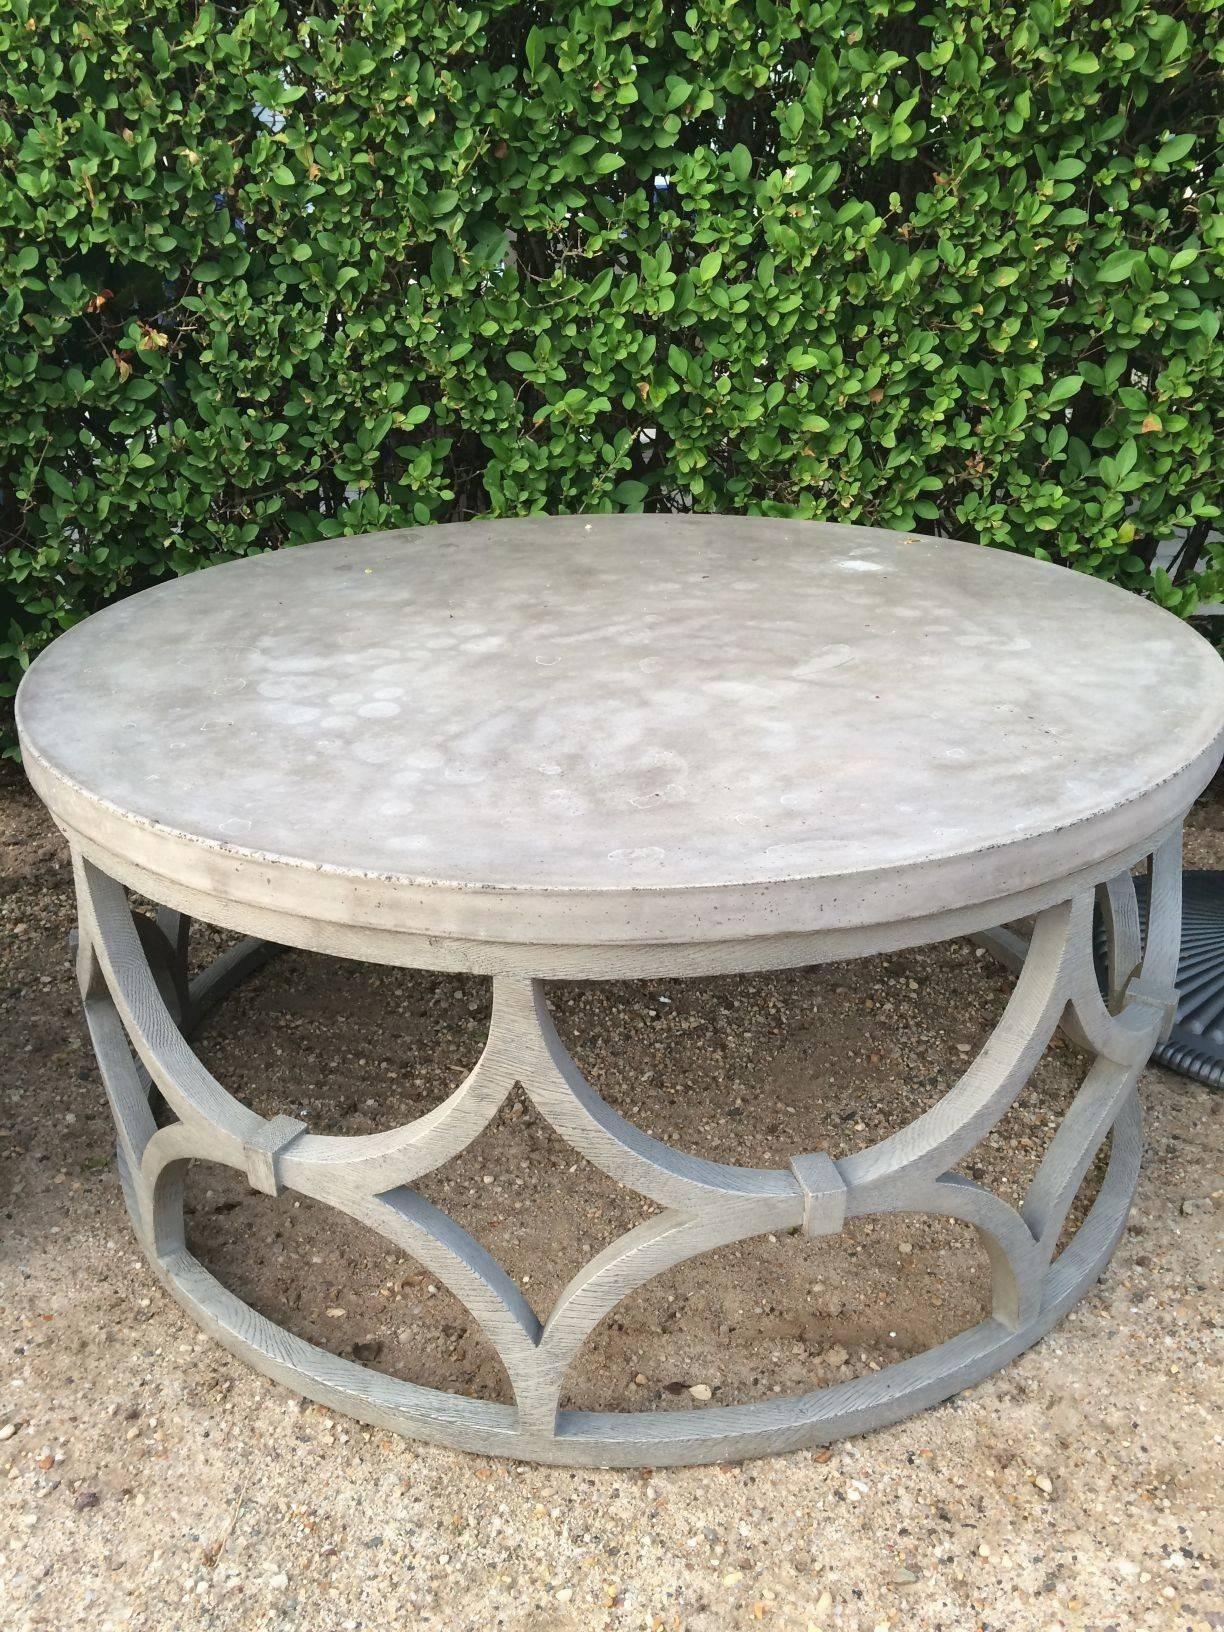 pier one round coffee table tables ideas awesome accent cloth small covers collection inspirational lucite zinc trestle patio furniture drum bedside dining arrangement monarch